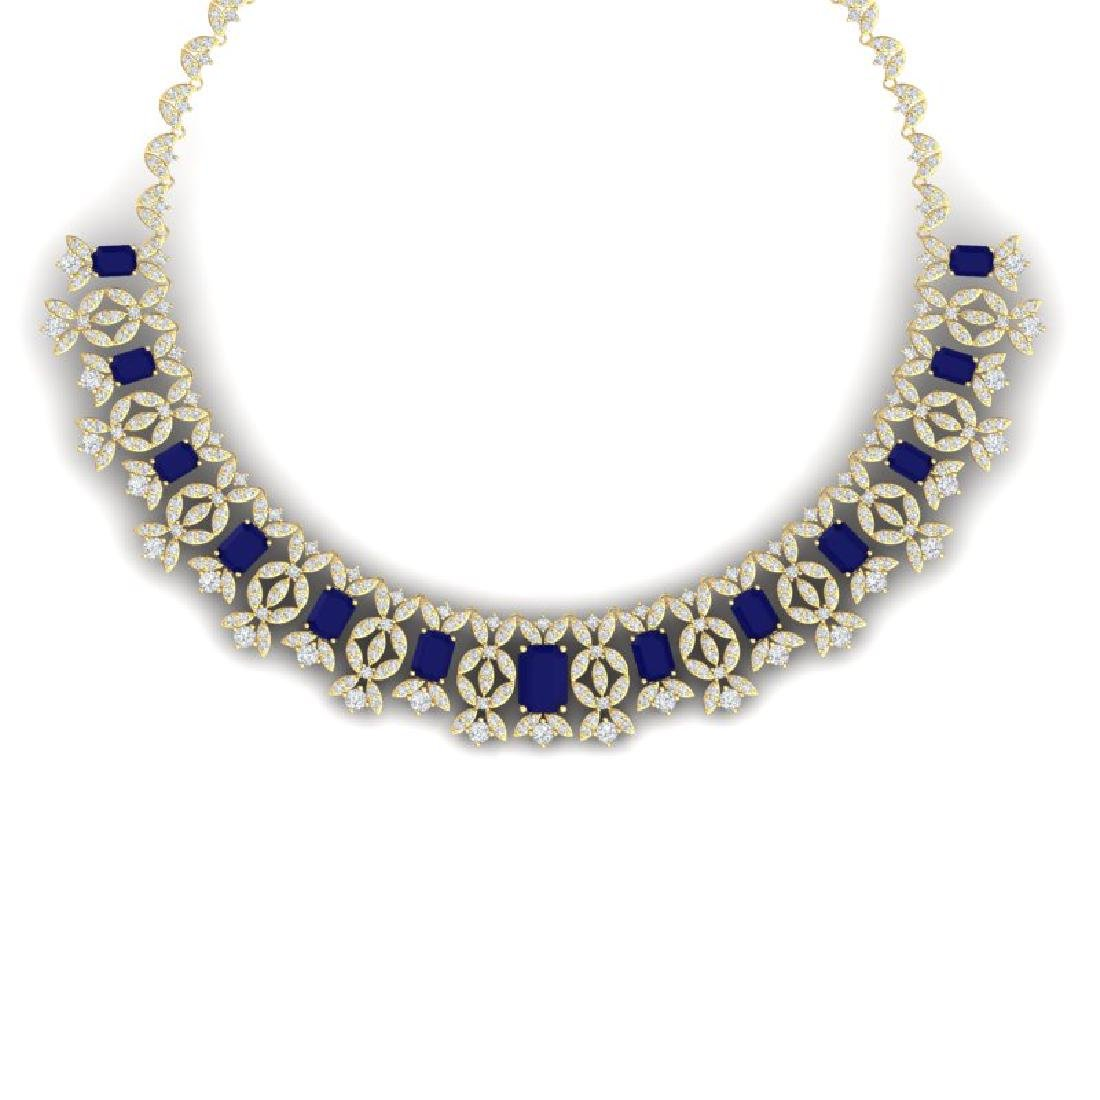 50.44 CTW Royalty Sapphire & VS Diamond Necklace 18K